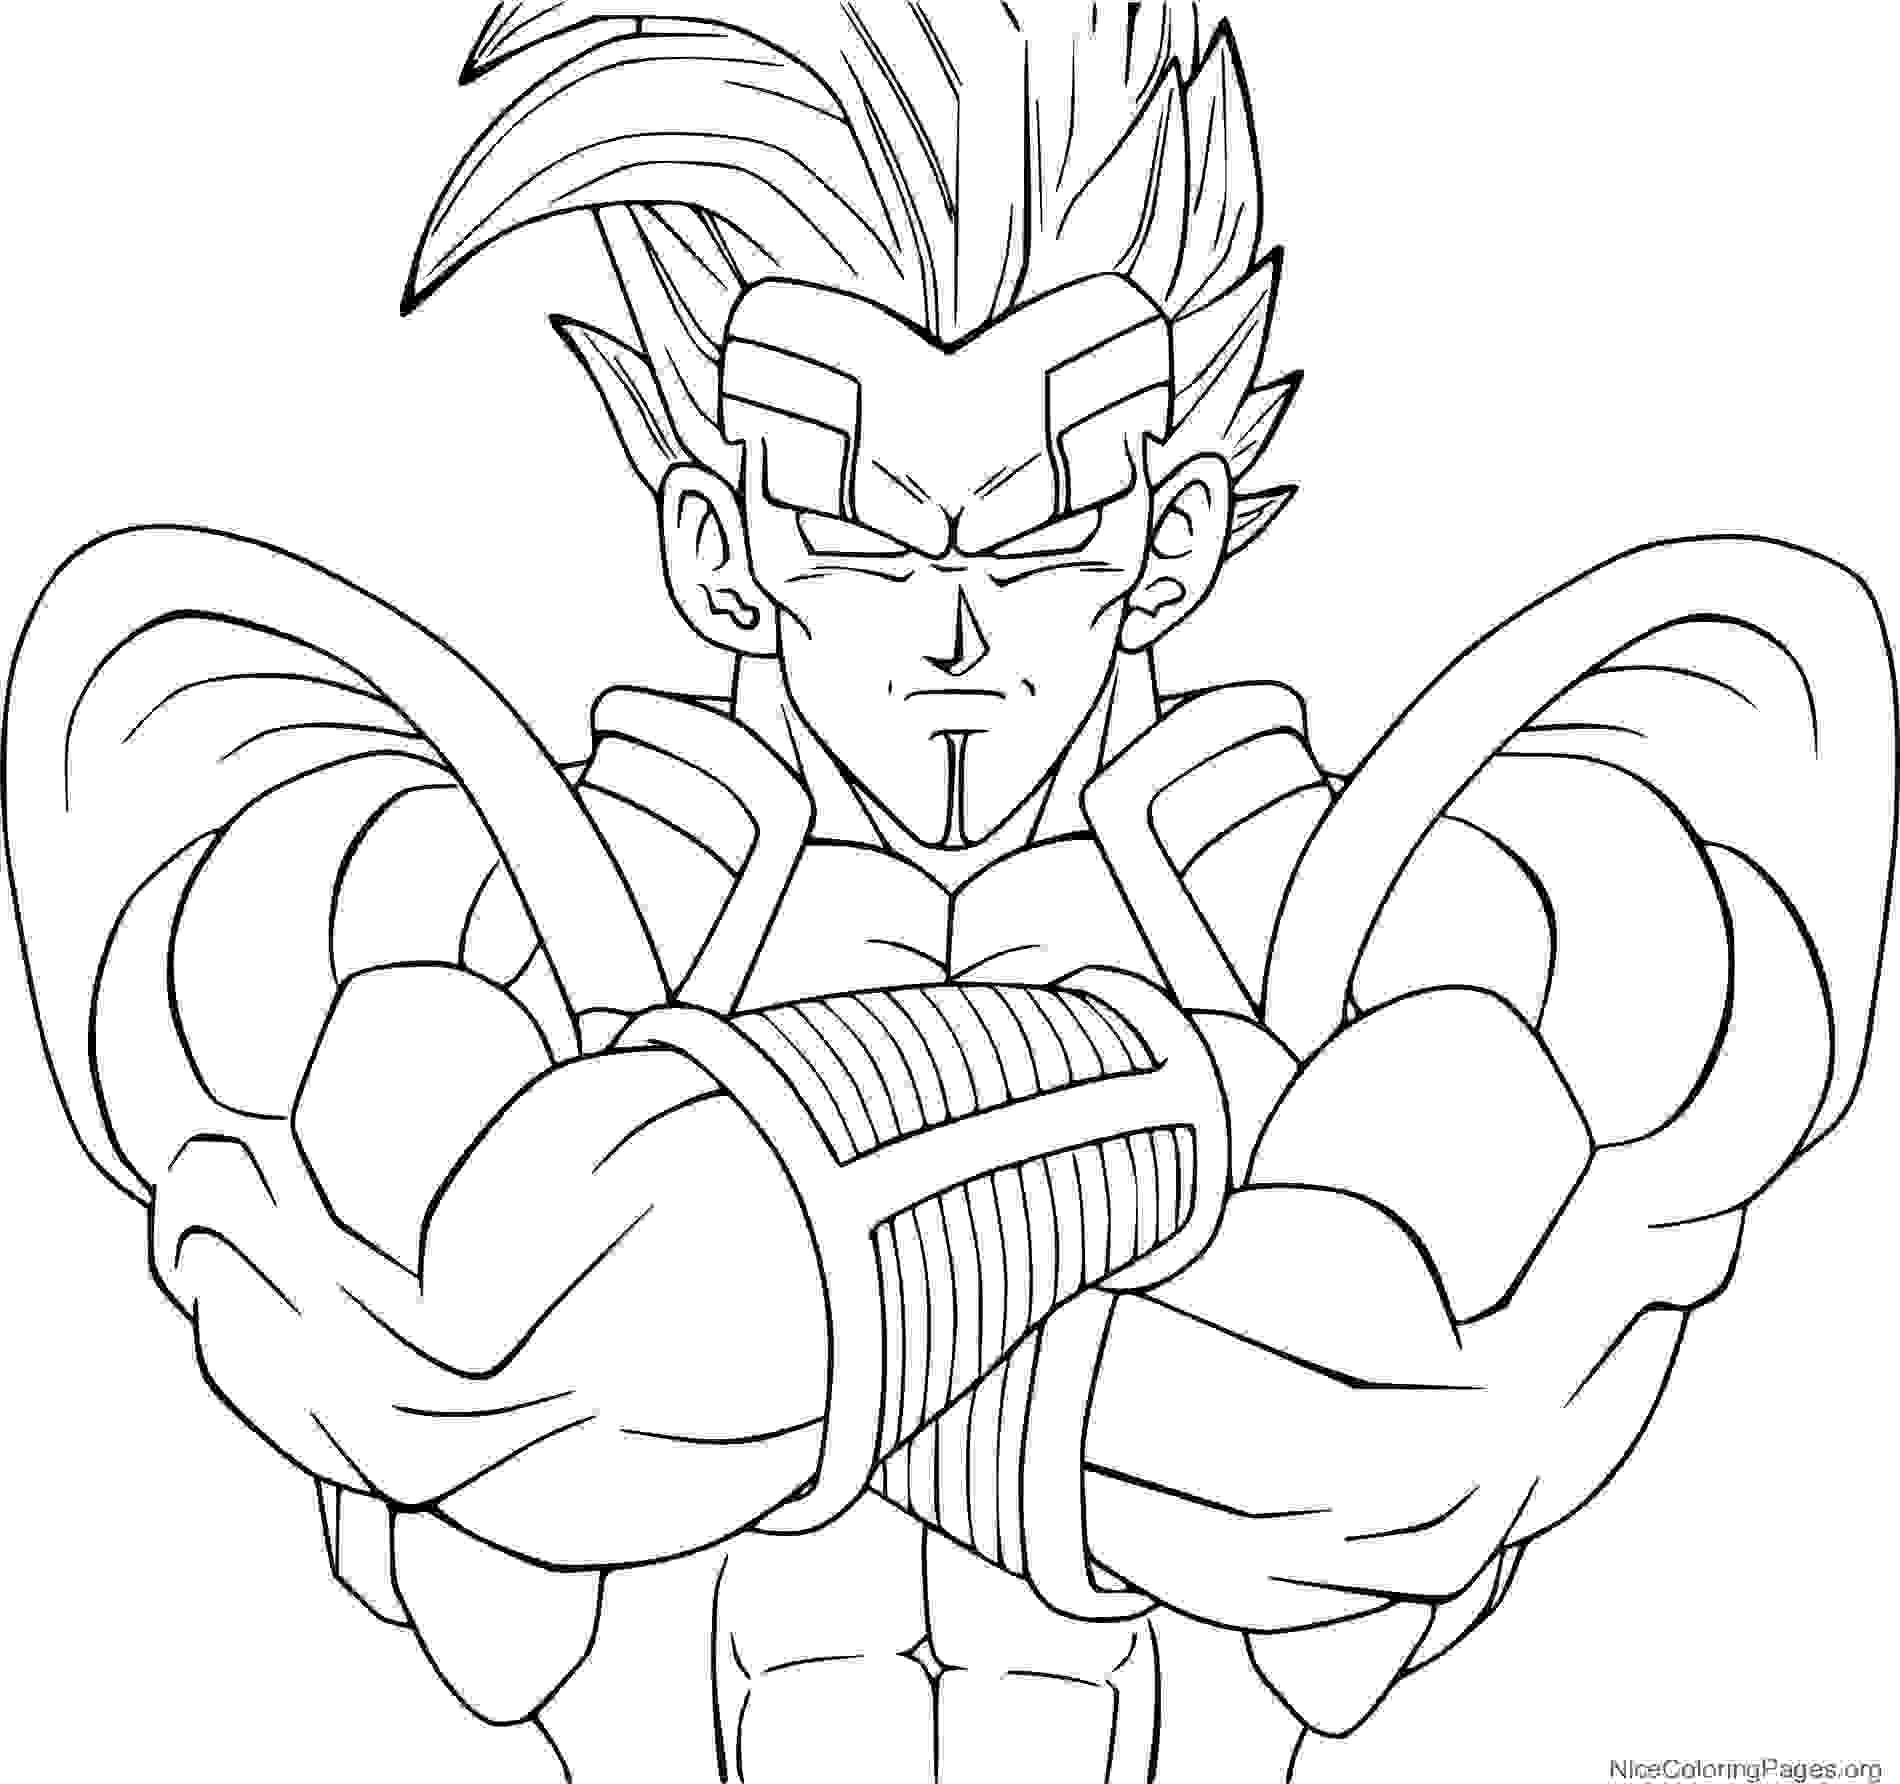 1900x1784 Dragon Ball Z Coloring Pages Vegeta And Goku Many Interesting